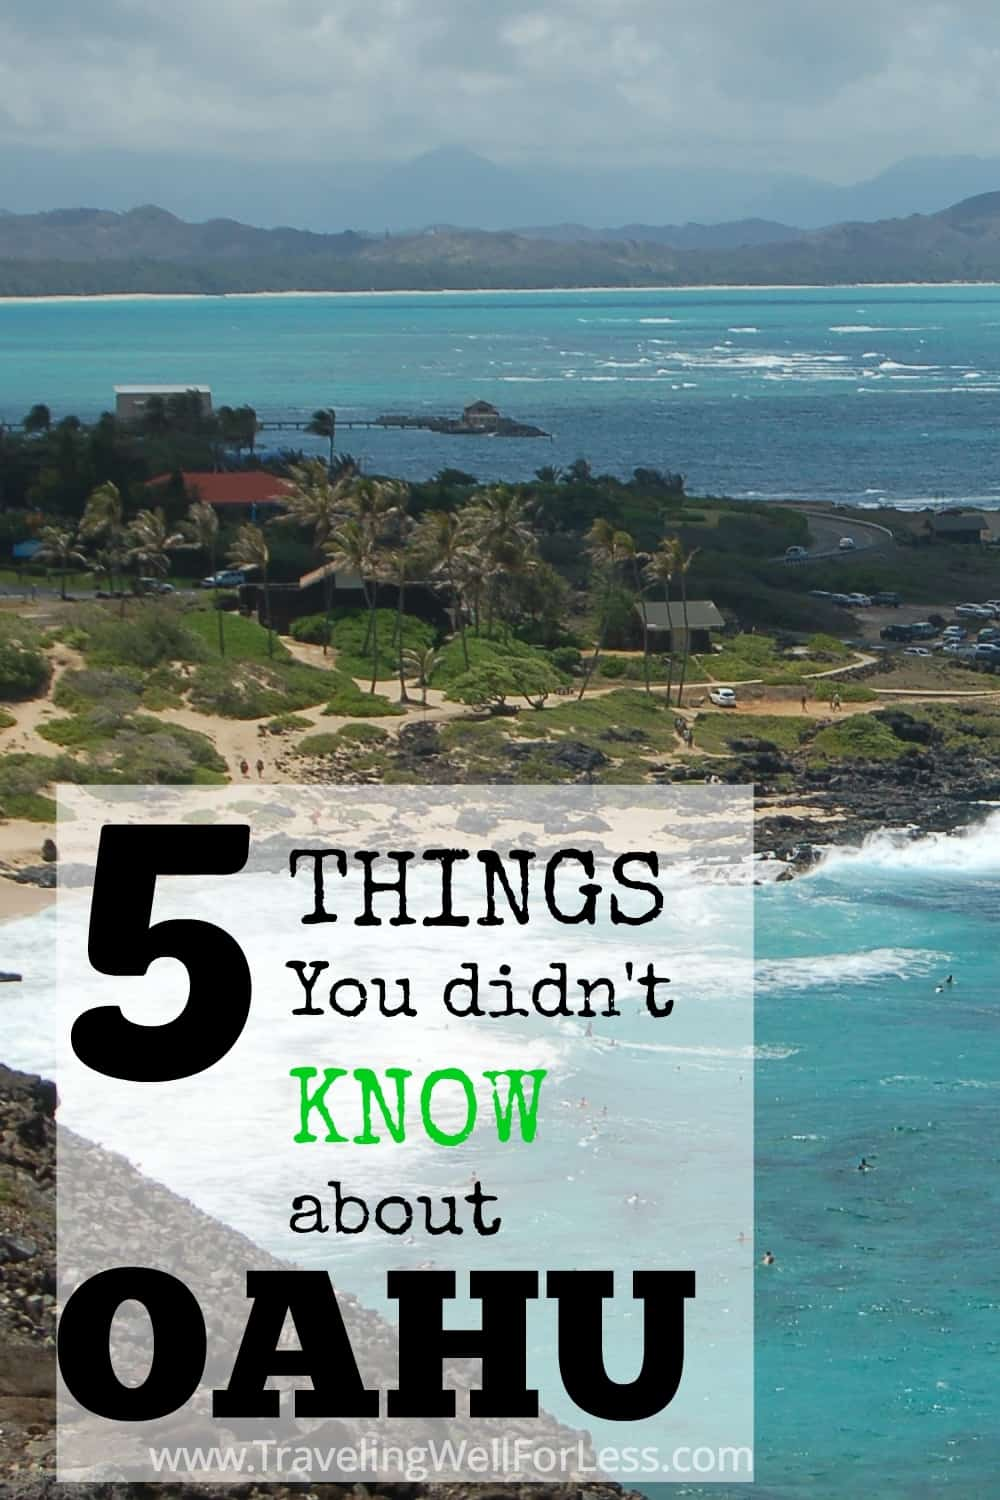 5-things-you-didn't-know-about-Oahu